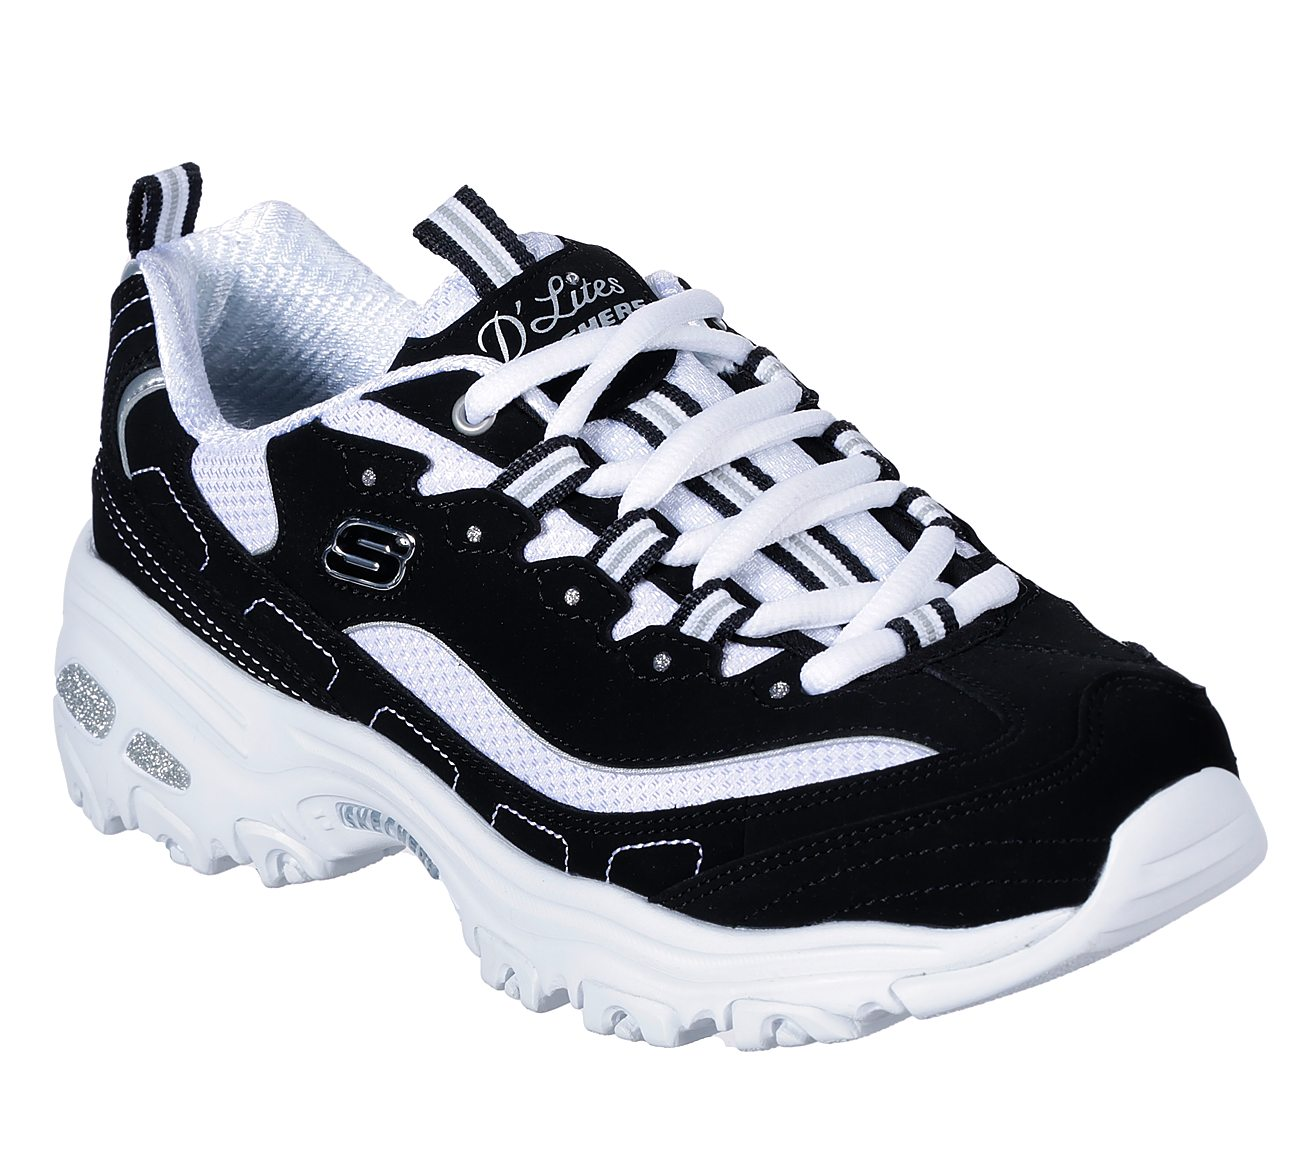 83ae34870ae1 Buy SKECHERS D'Lites - Biggest Fan D'Lites Shoes only $100.00